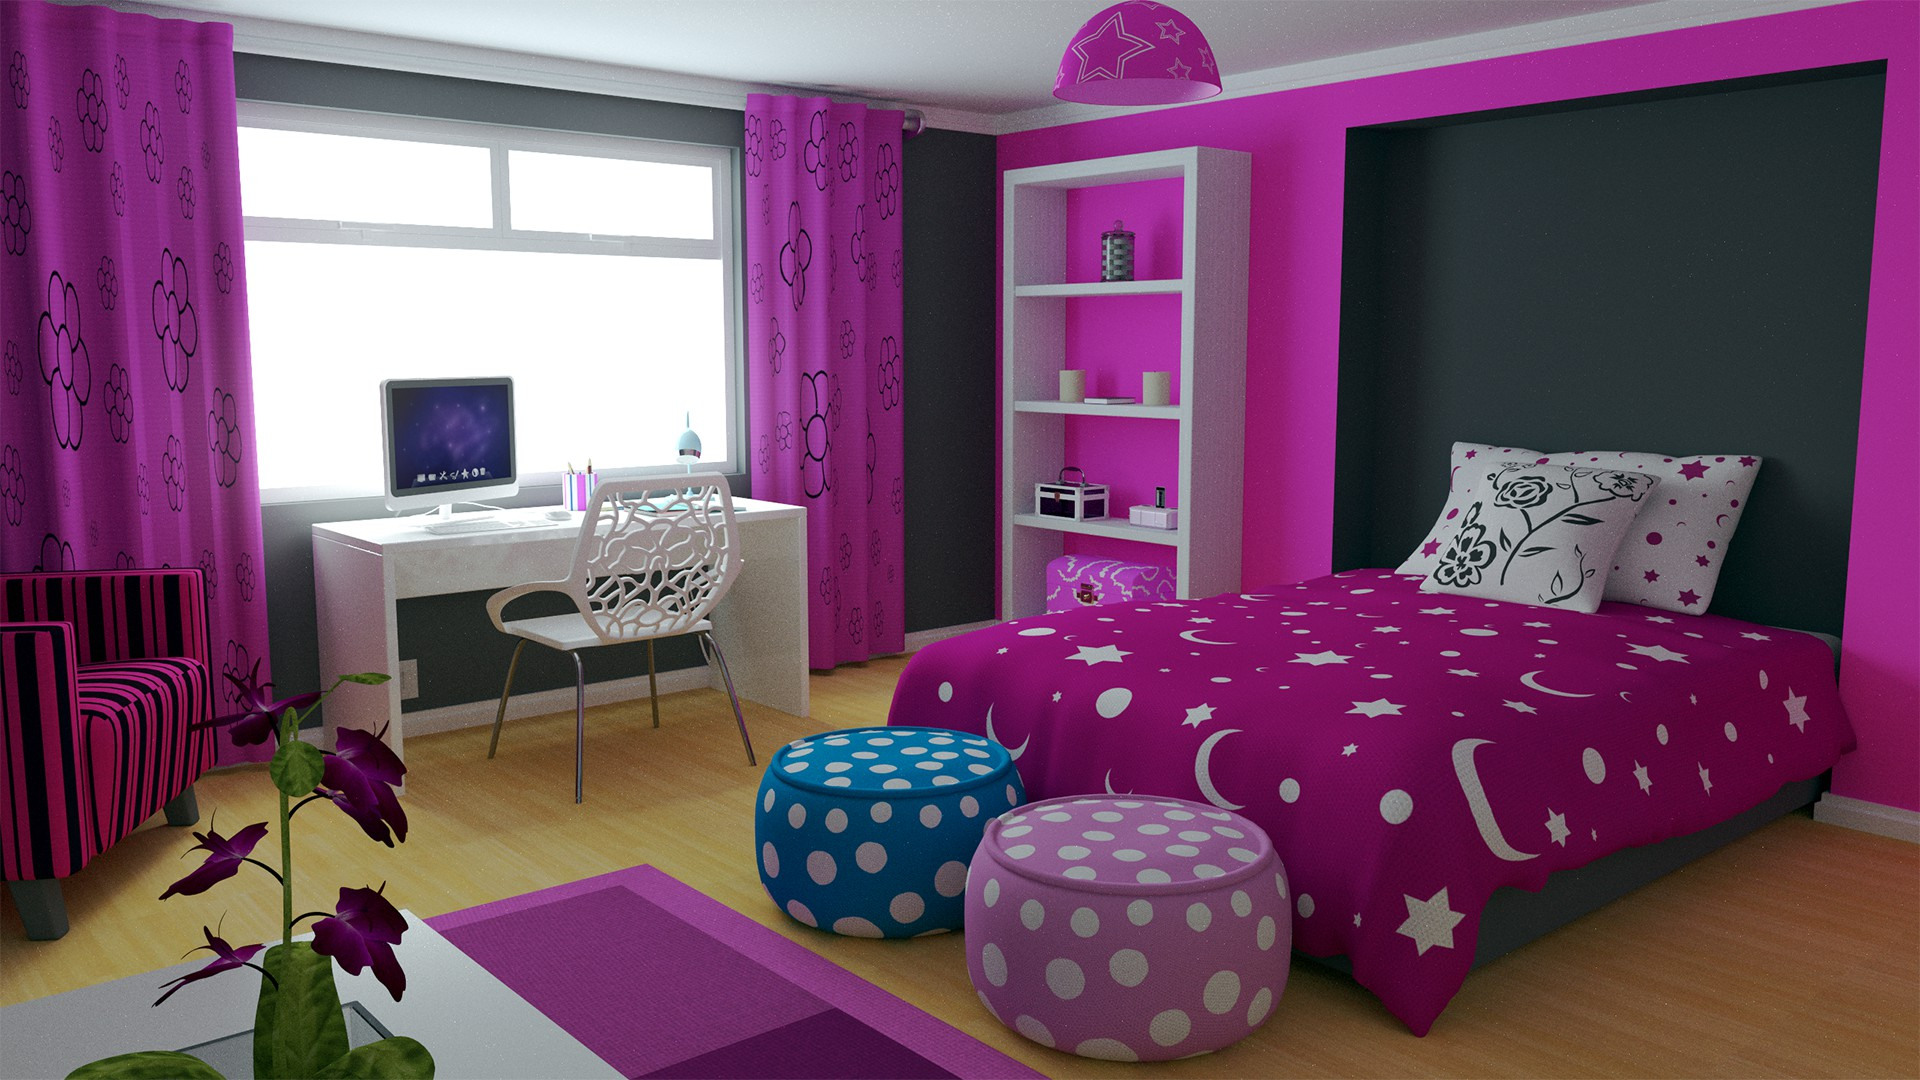 Modern girls bedroom by truform 3d modeling home Modern bedroom ideas for girls